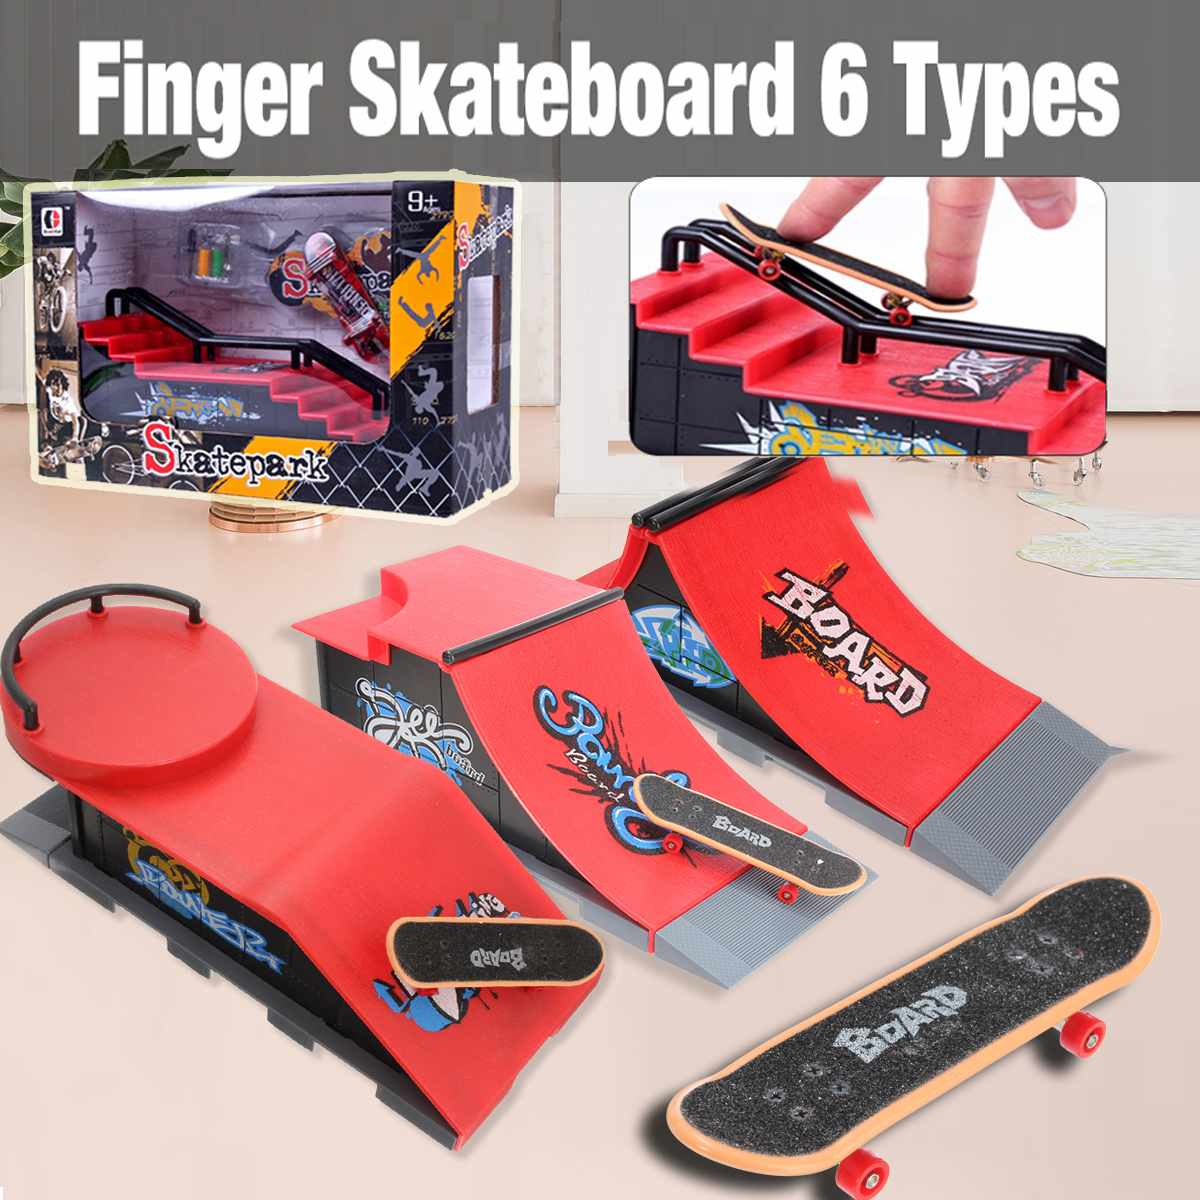 Finger Skateboards Toy Set Mini Training Educational Fingerboard with Ramp Track